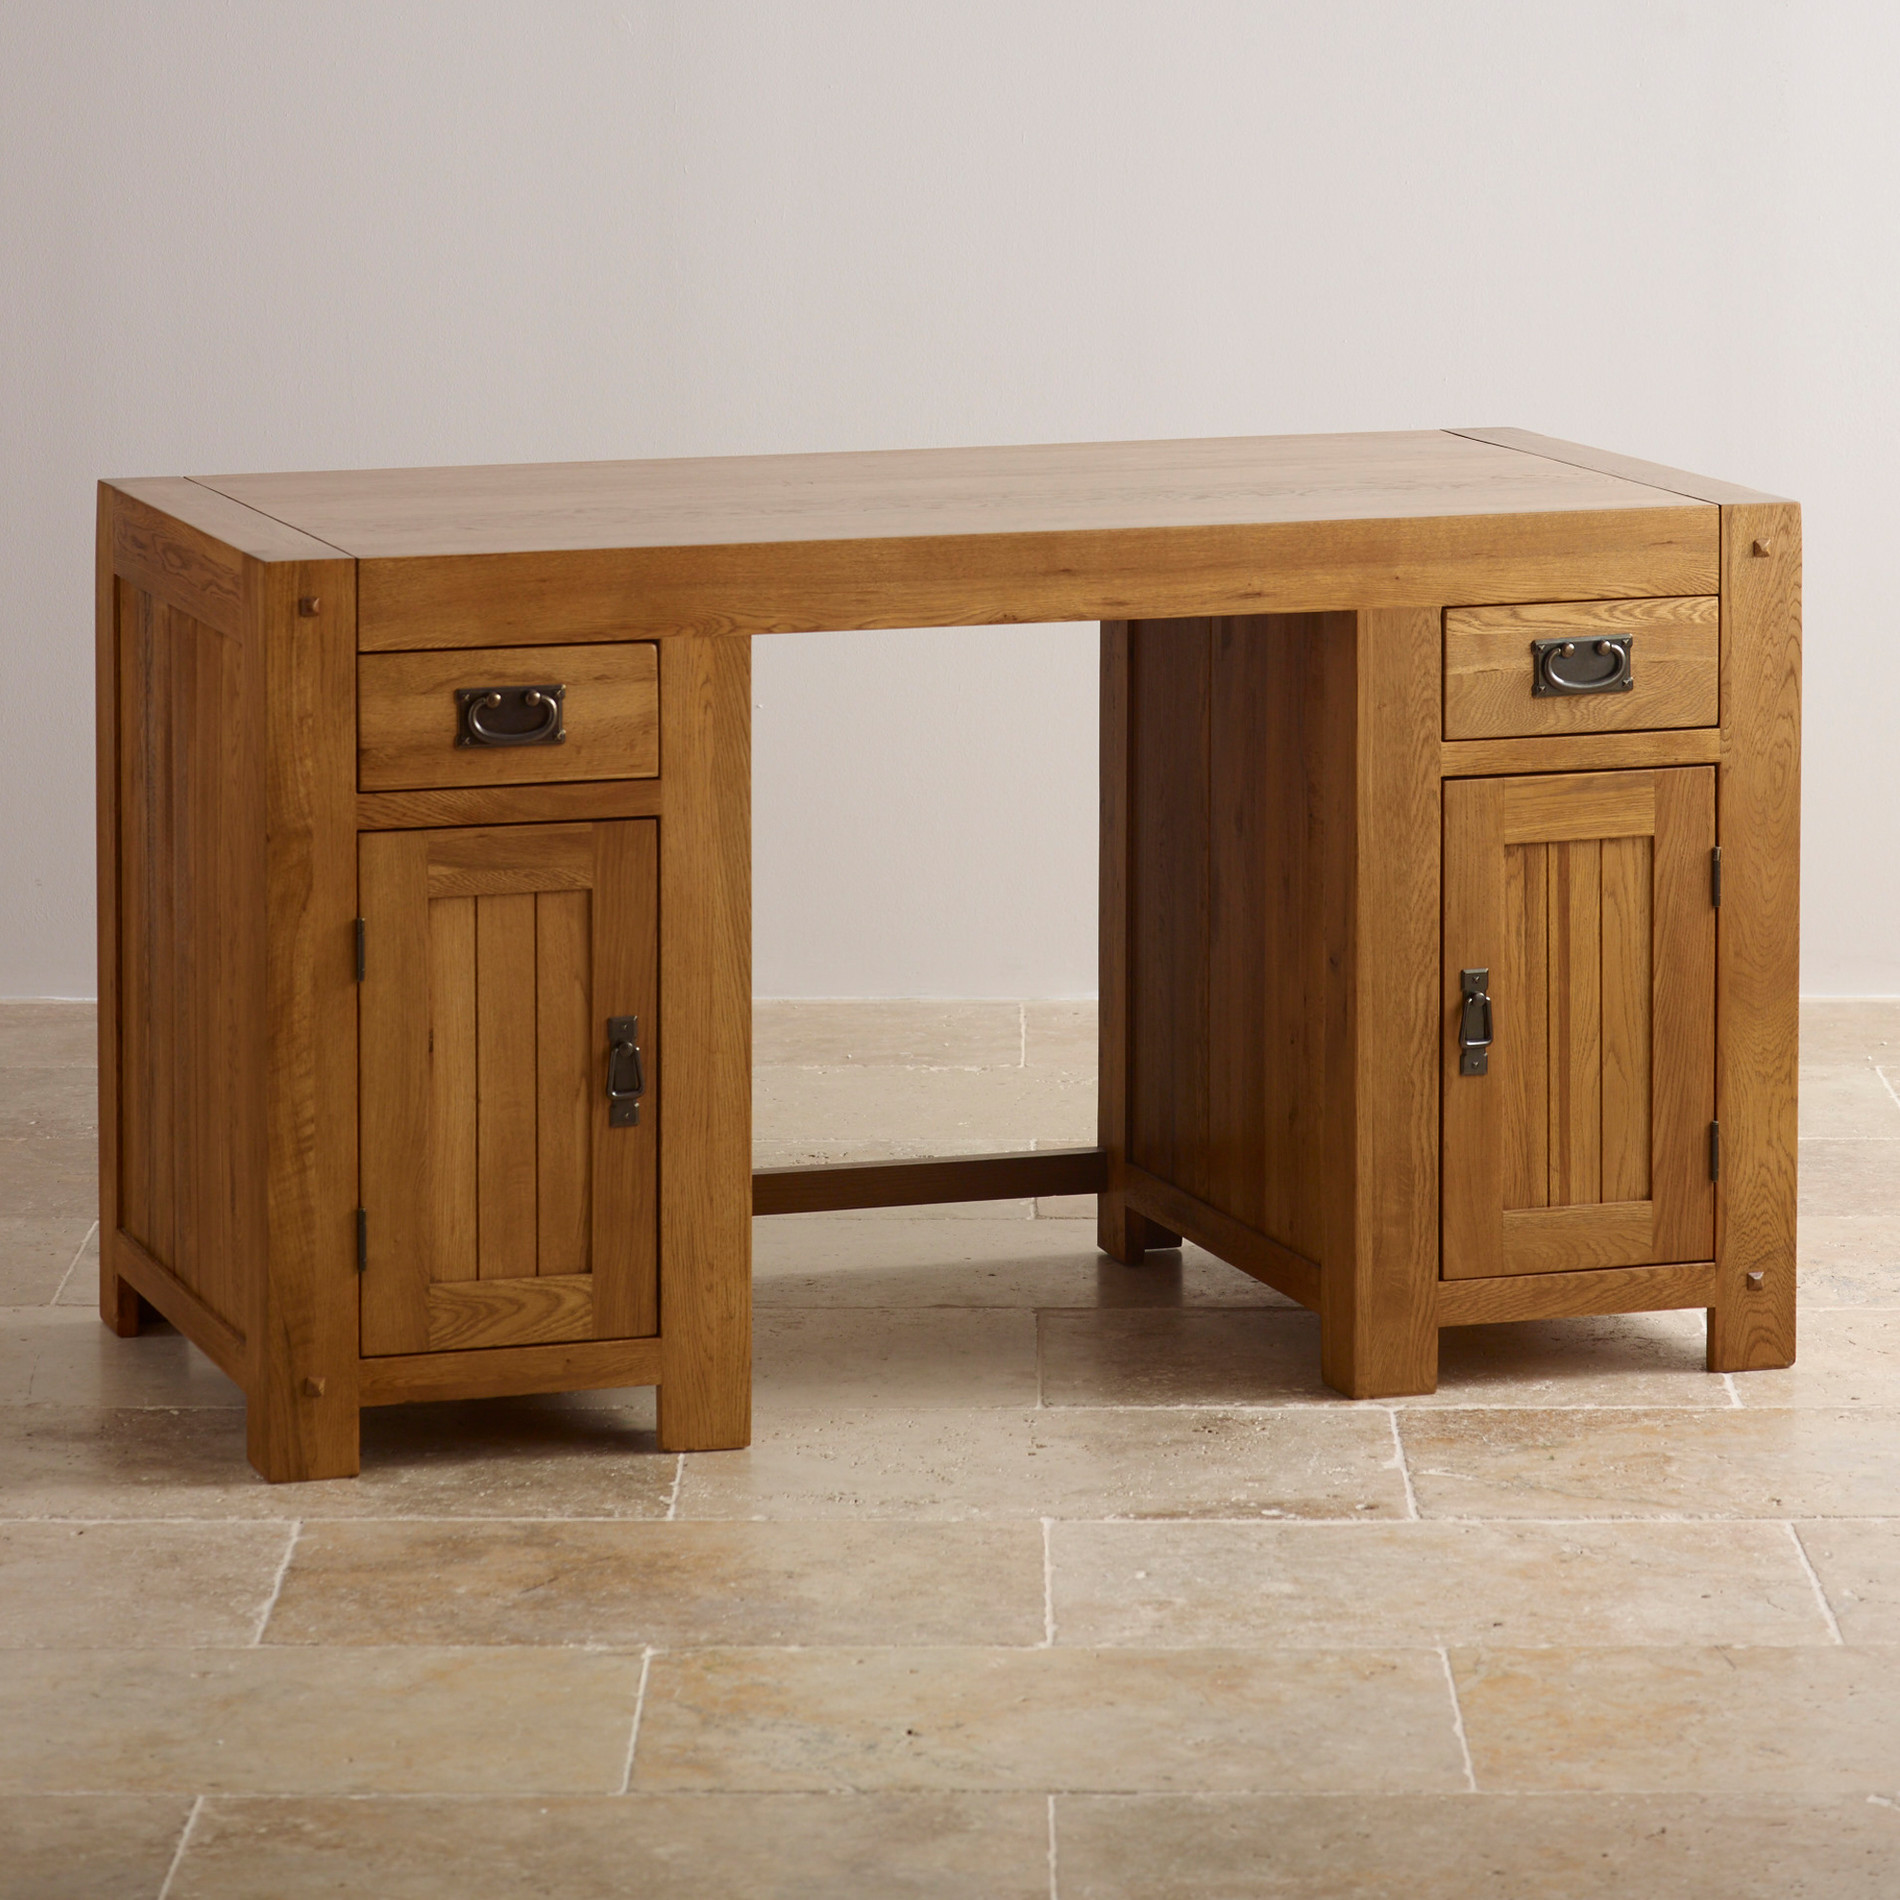 Quercus computer desk rustic oak oak furniture land for Oak furniture land